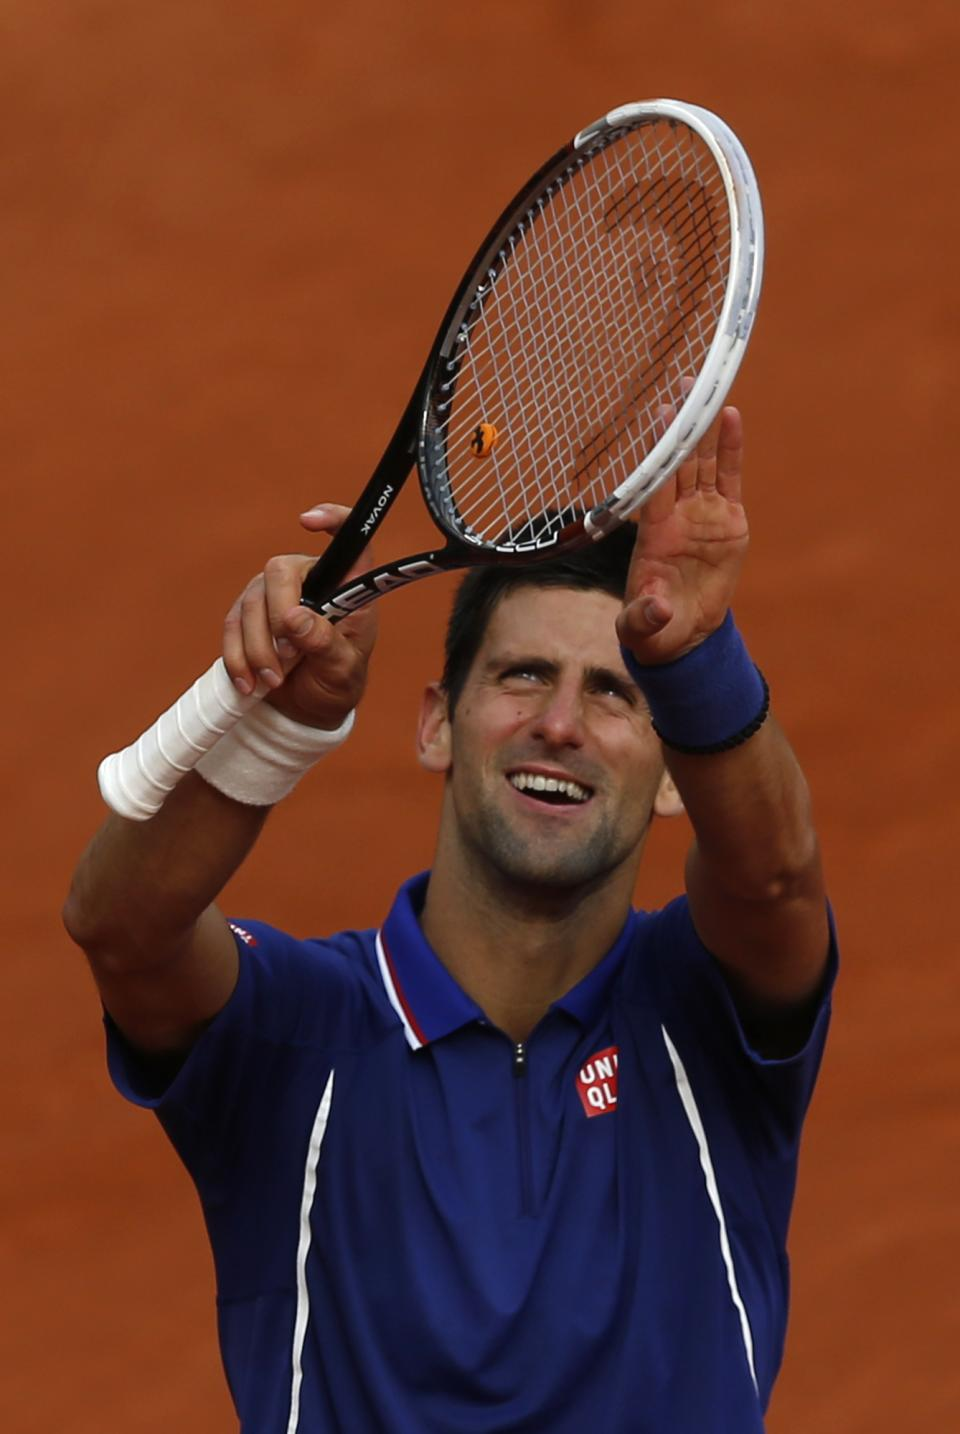 Serbia's Novak Djokovic mimics pushing the rain clouds away shortly before defeating Argentina's Guido Pella during their second round match of the French Open tennis tournament at the Roland Garros stadium Thursday, May 30, 2013 in Paris. Djokovic won 6-2, 6-0, 6-2. (AP Photo/Petr David Josek)